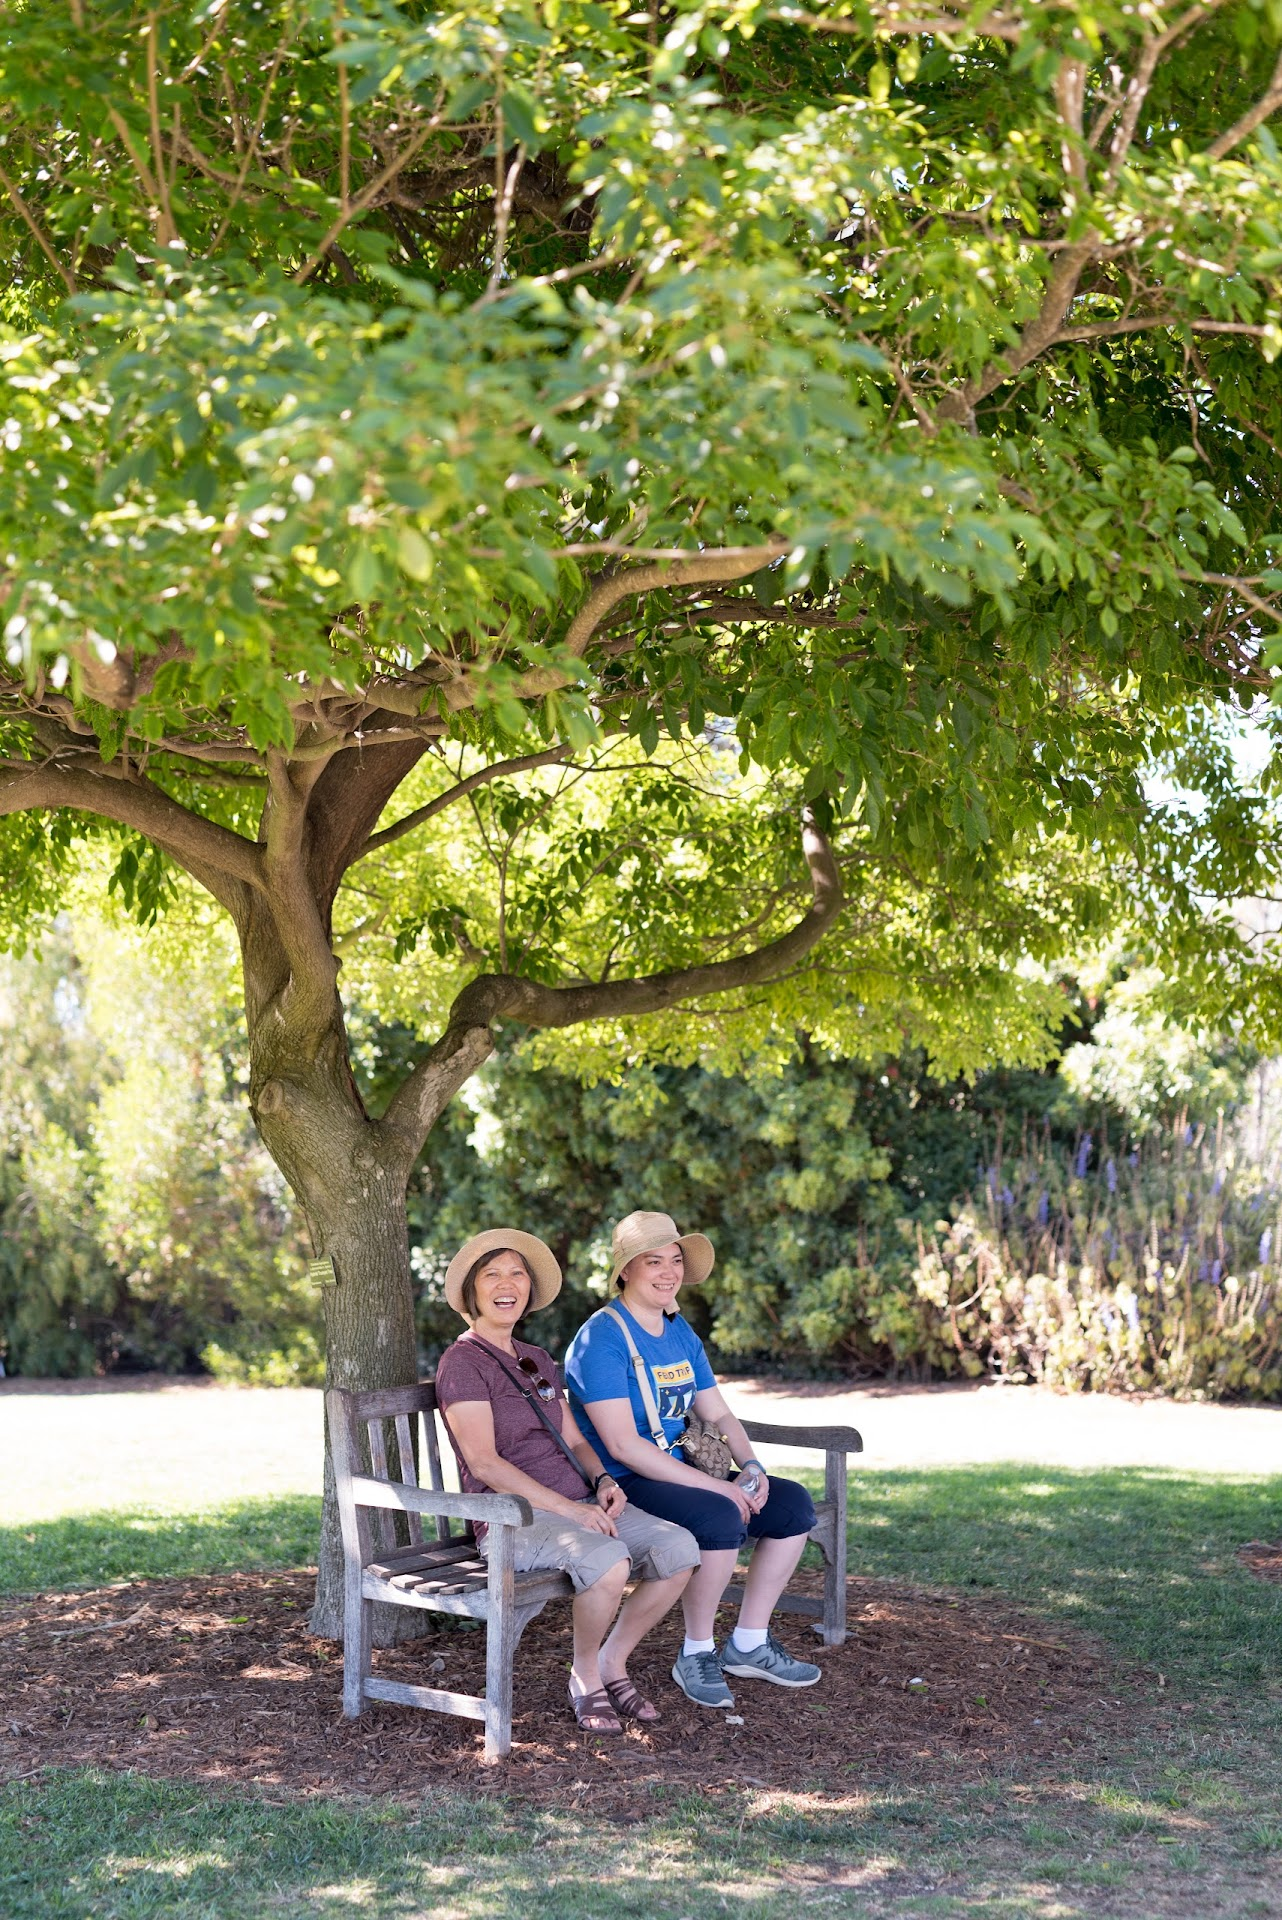 socal, southern california cities, where to visit, what to do, things to do, discover Torrance, south coast botanic garden,